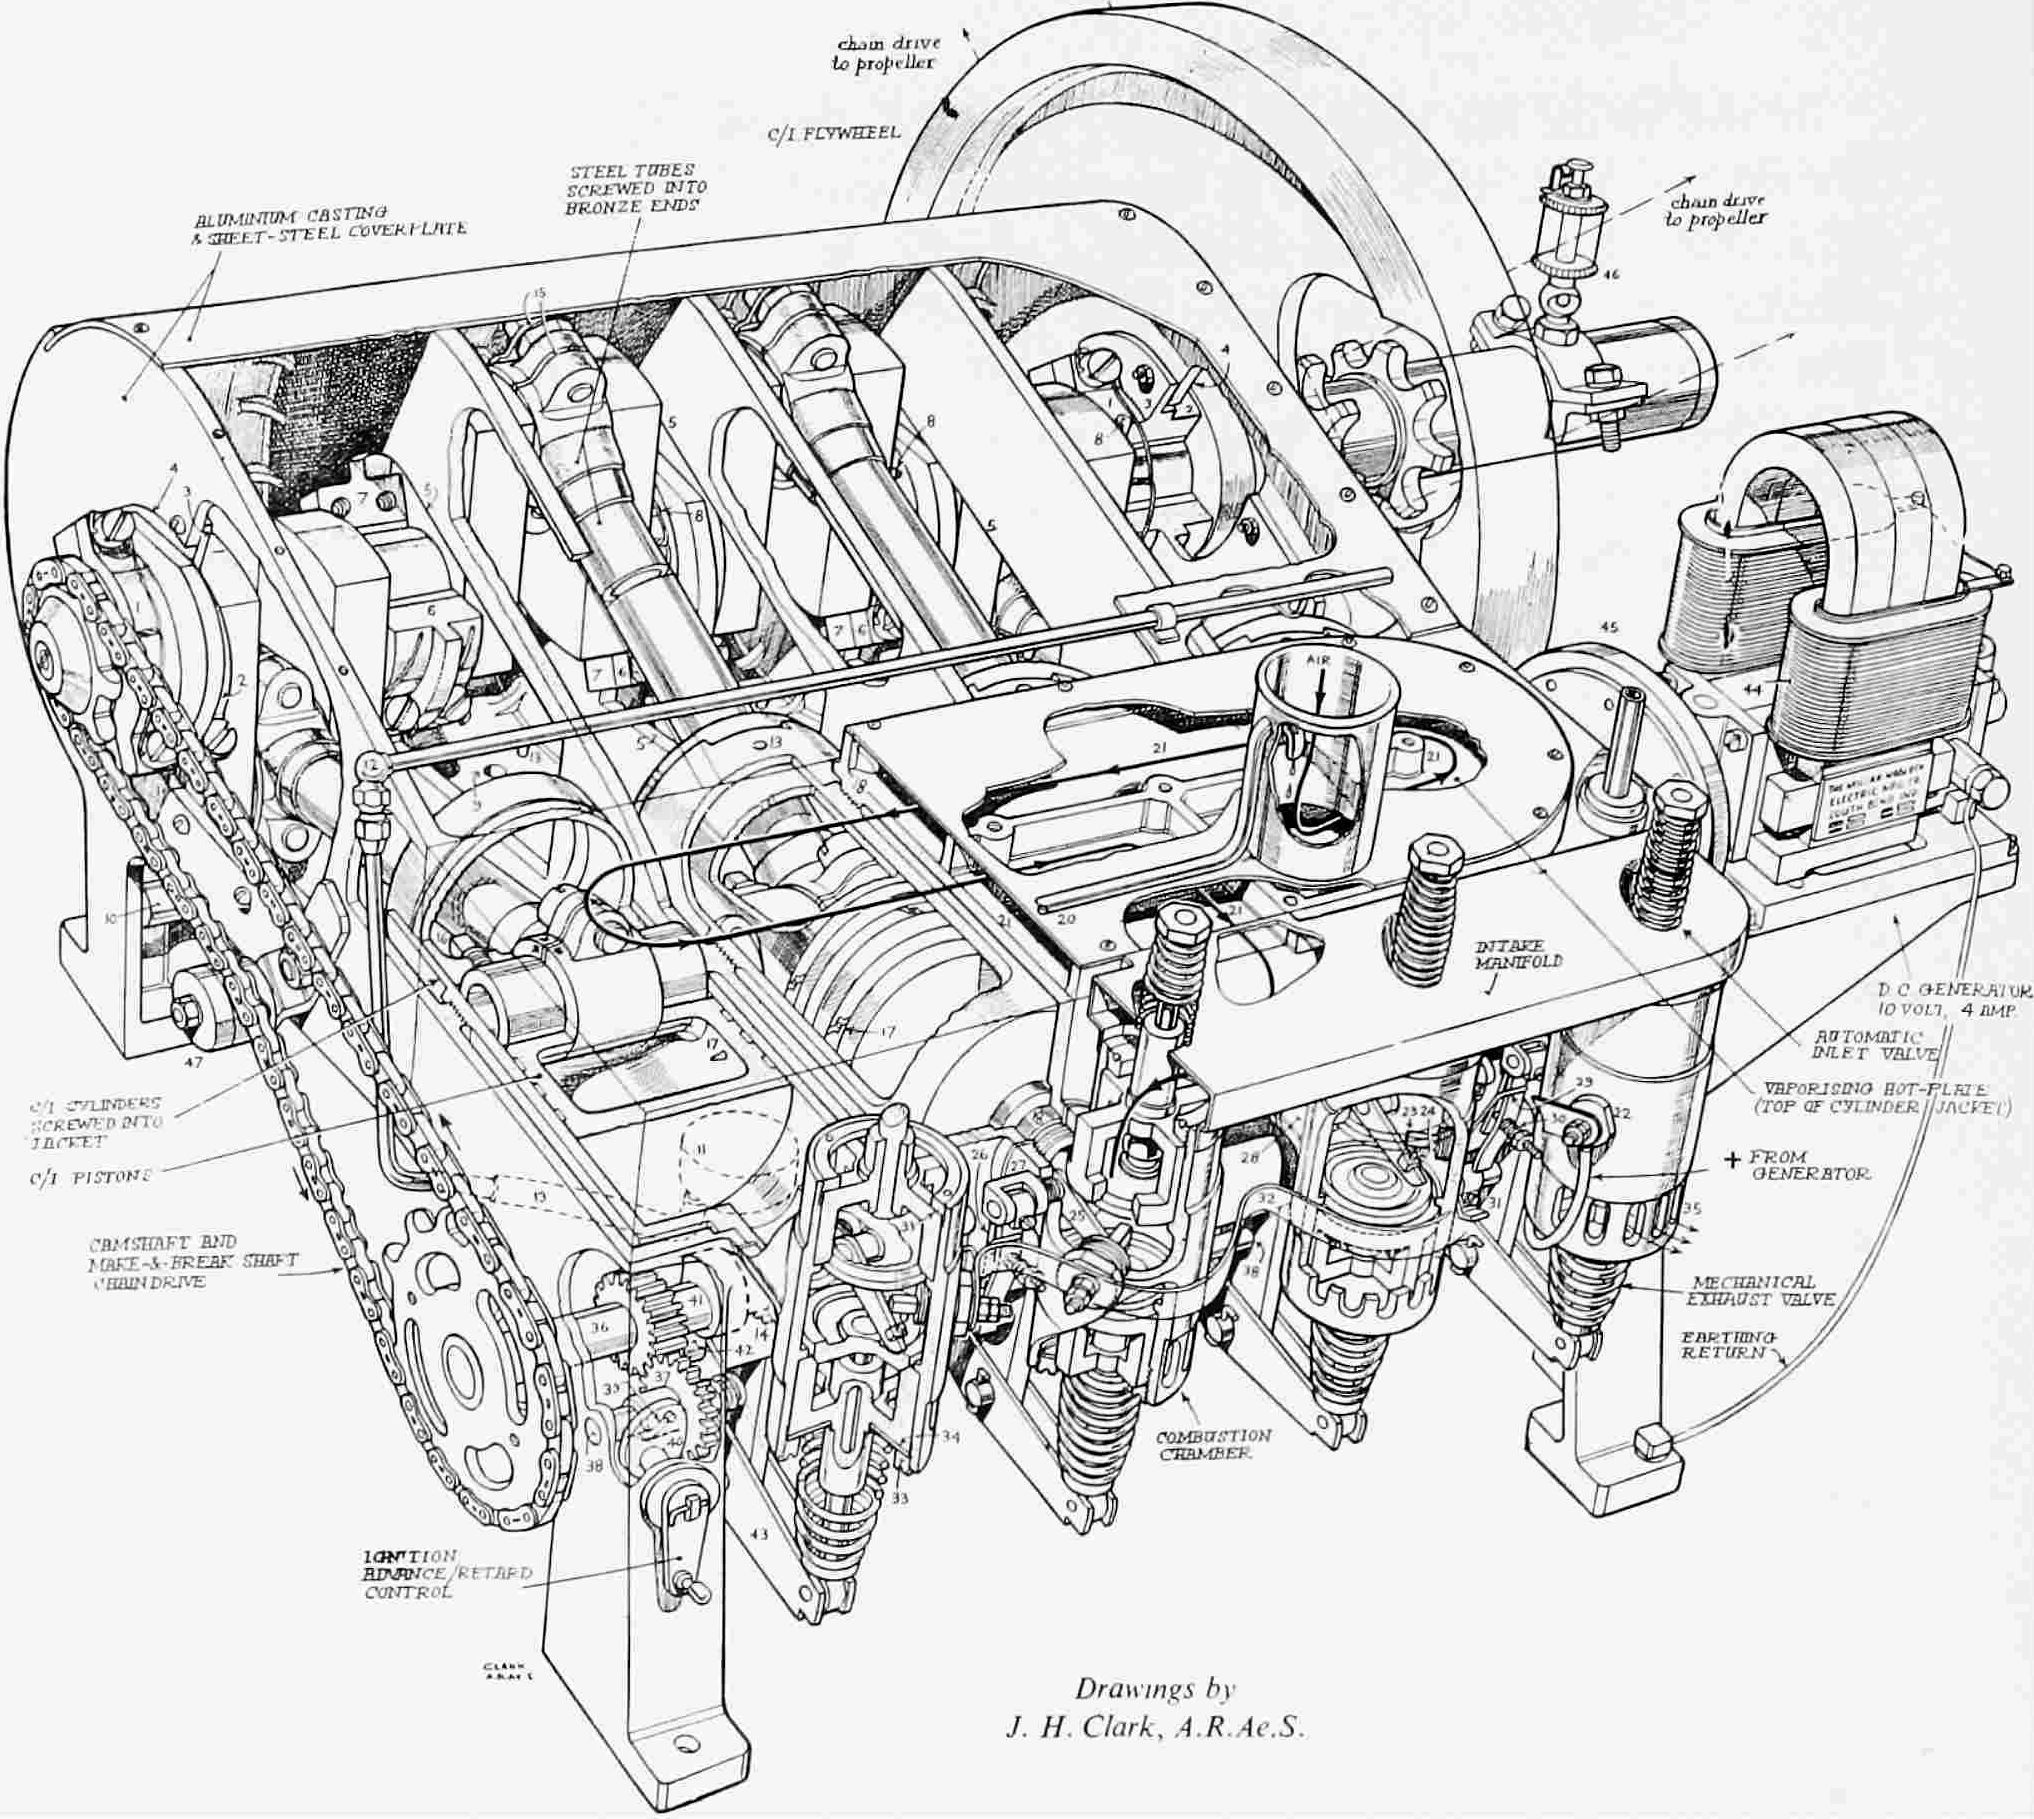 radial aircraft engine diagram f4u 1 corsair defined